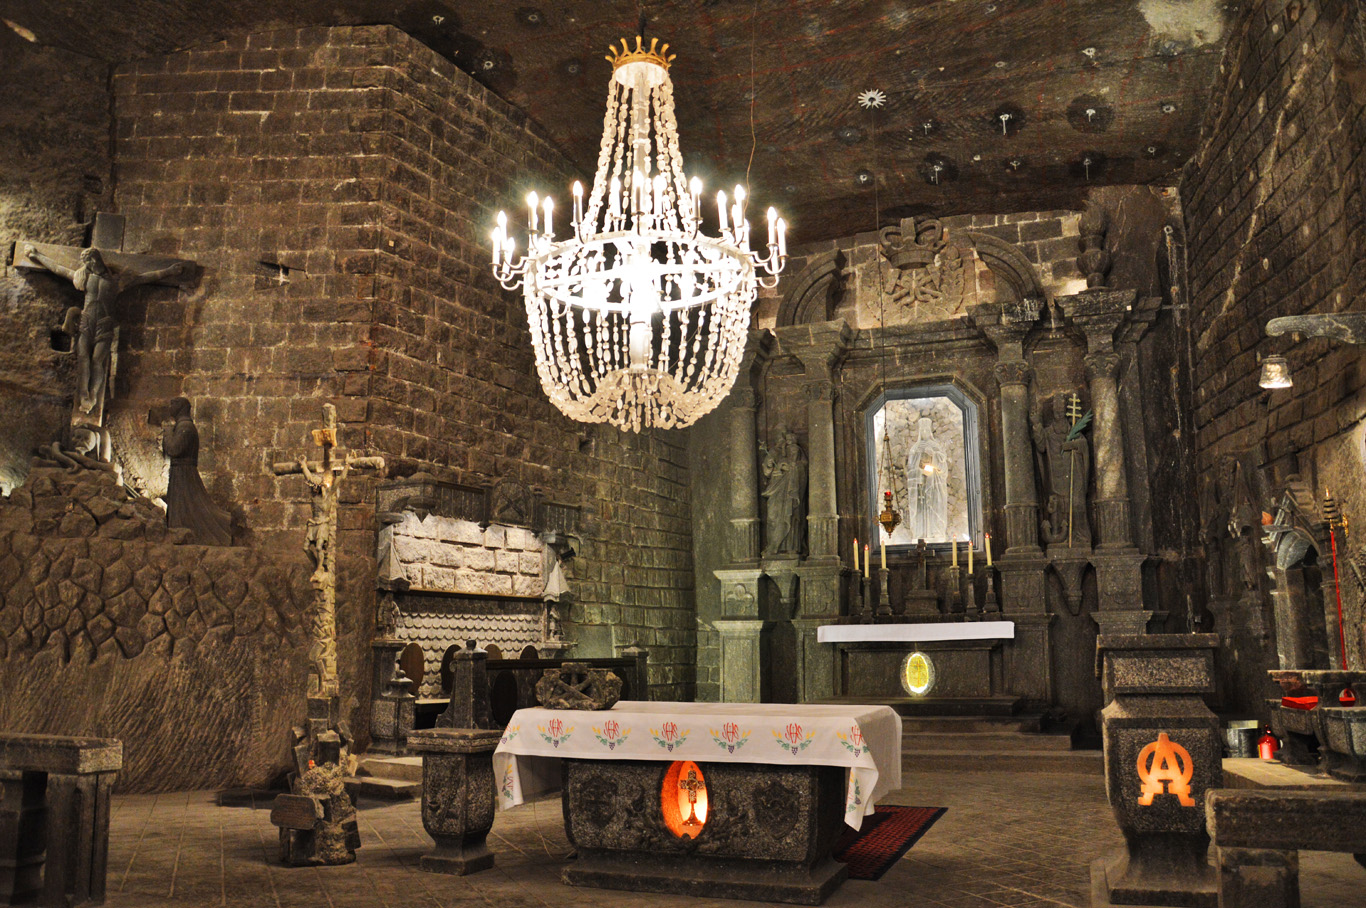 St. Kinga's Chapel - every object in this photo (including the chandelier) is made of salt